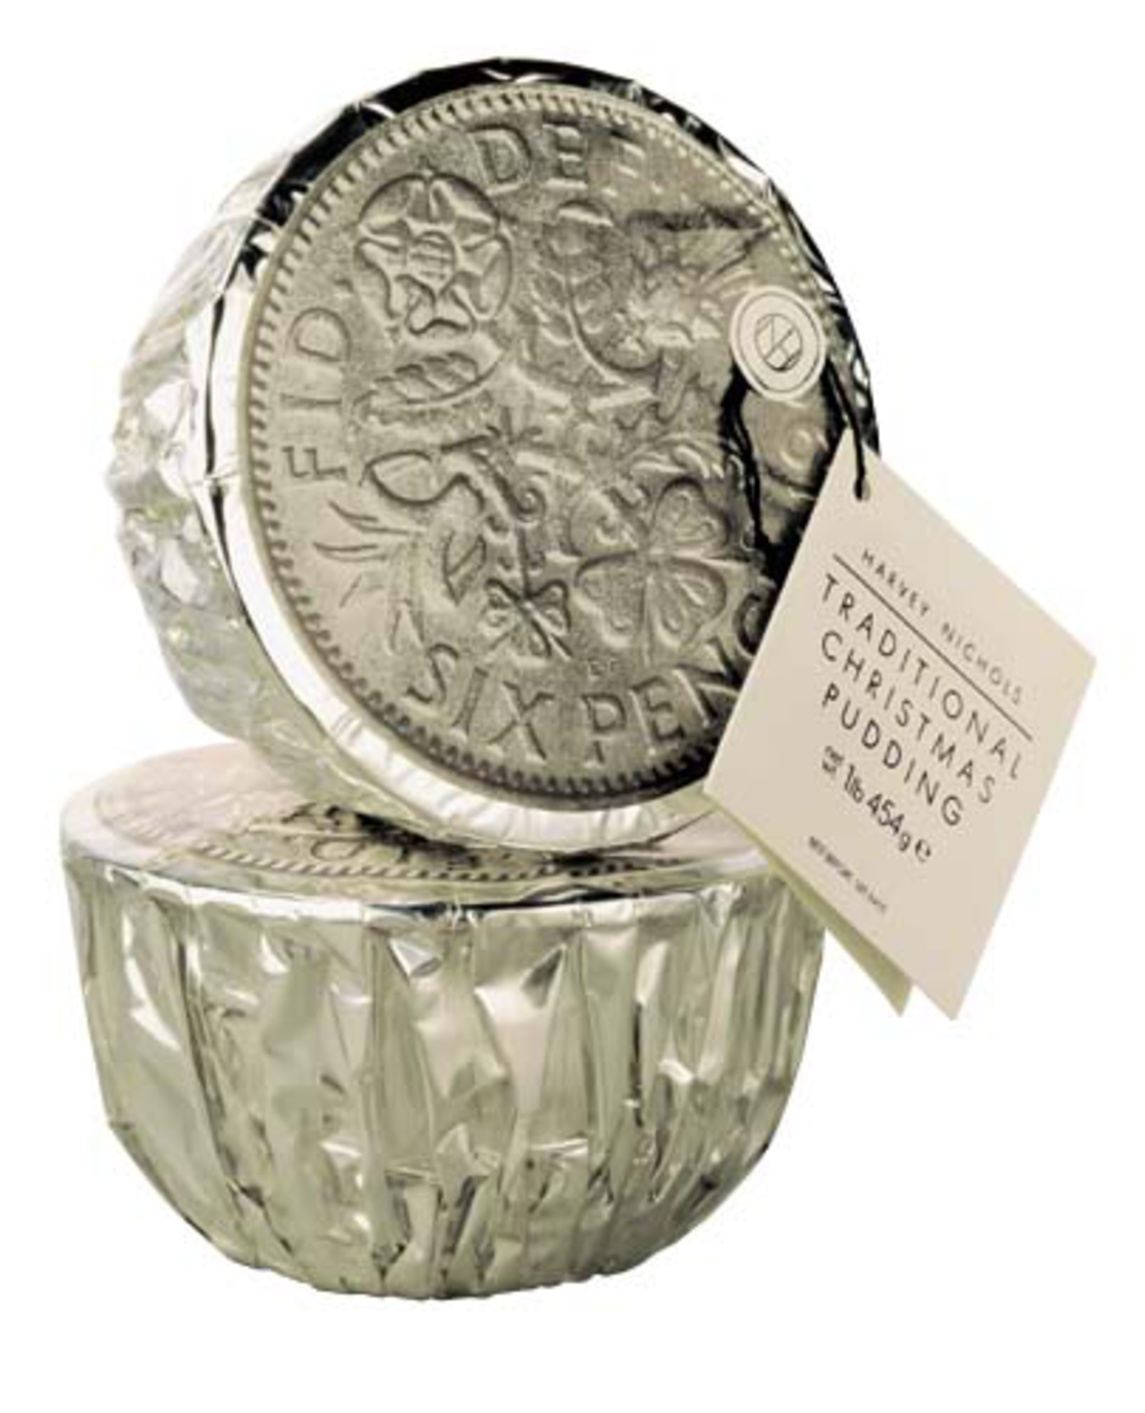 Harvey Nichols Sixpence Pudding.jpg